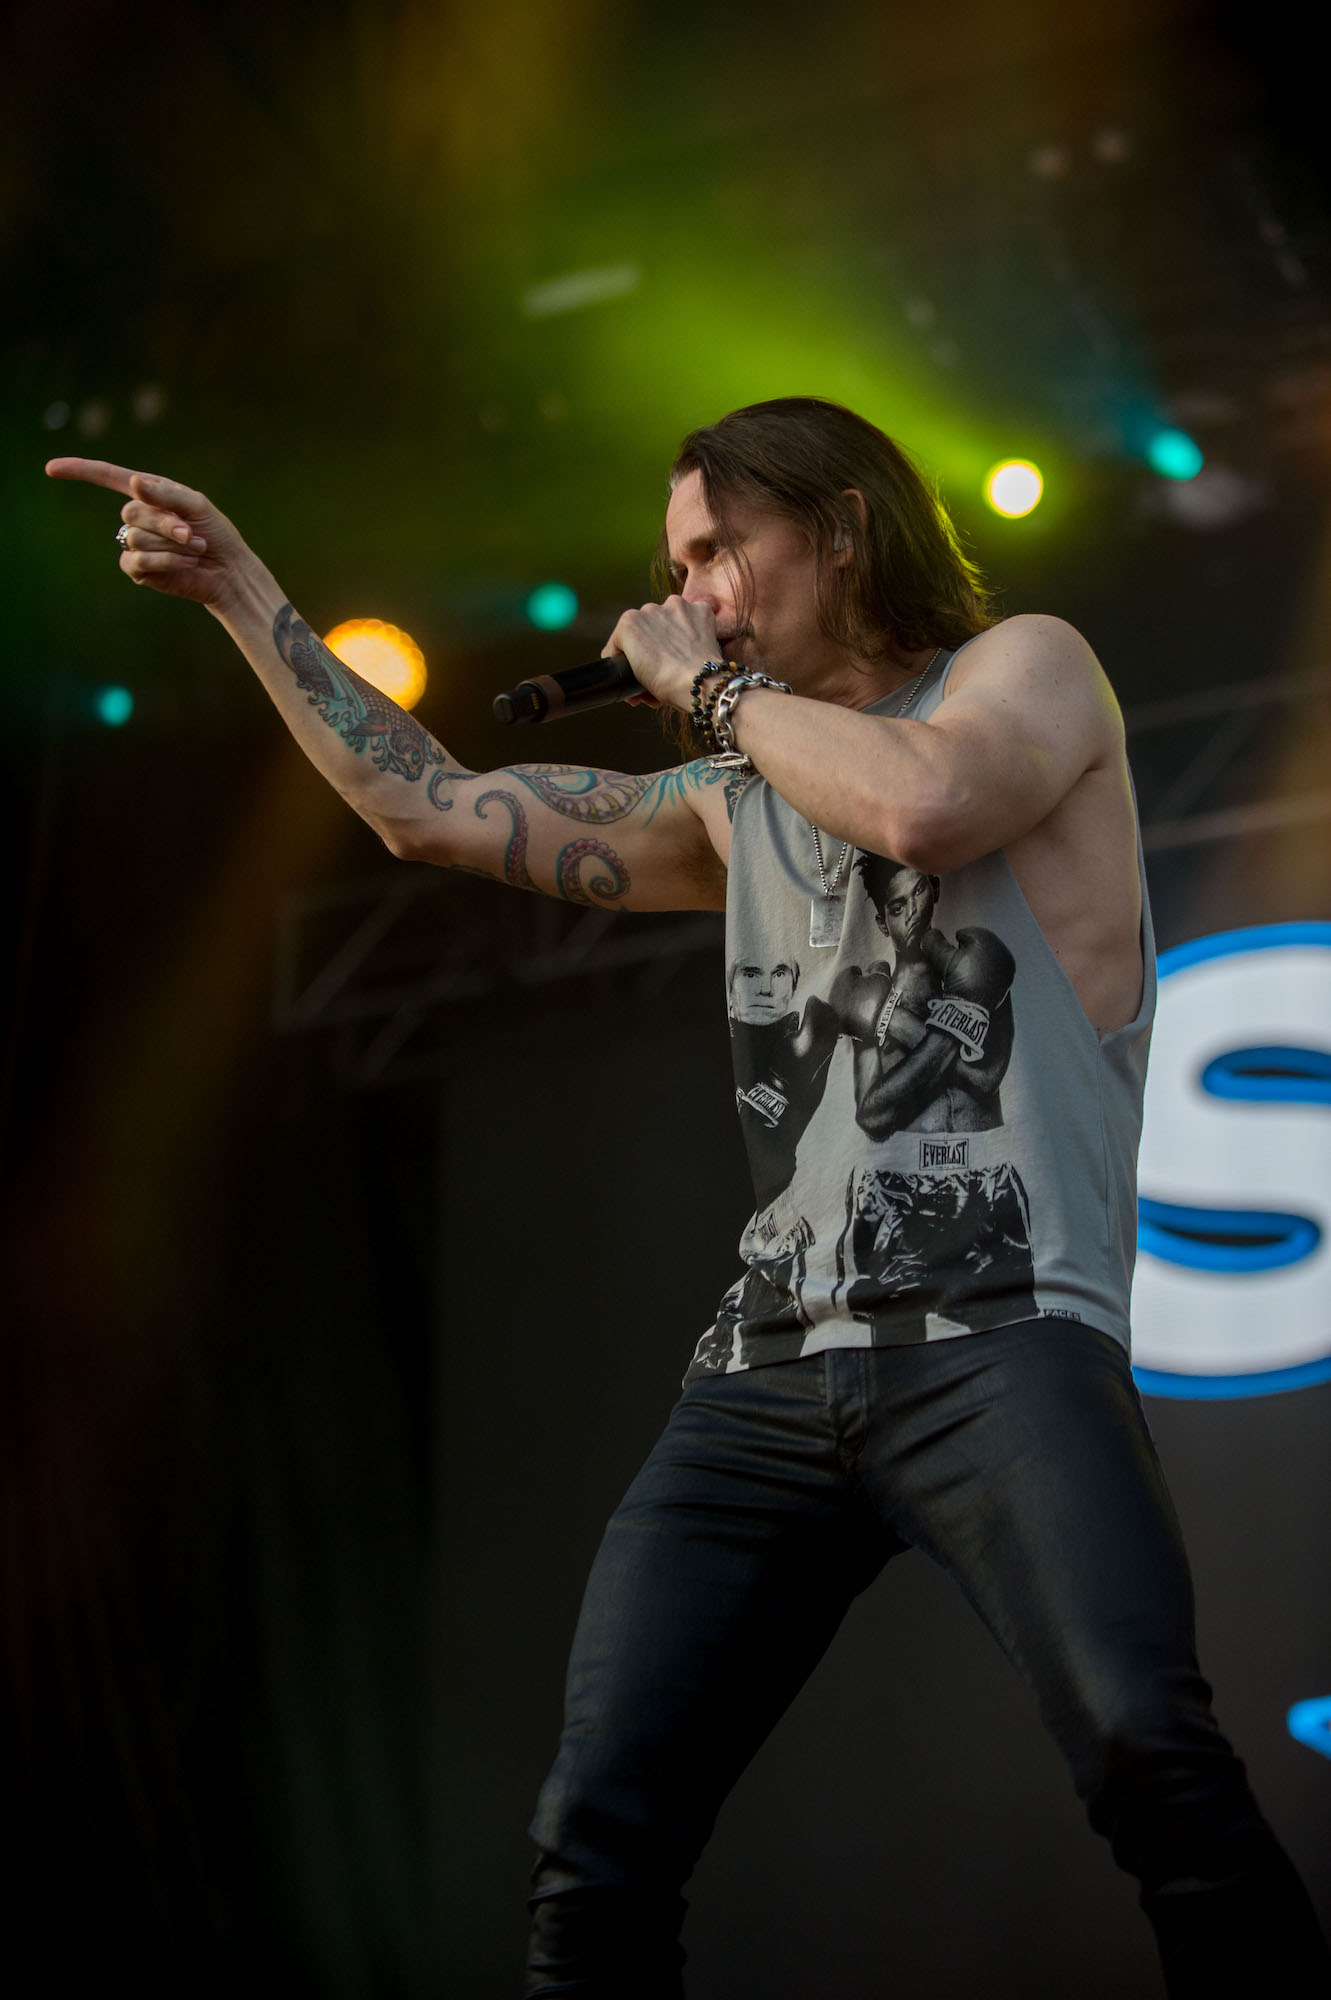 SLASH Featuring Myles Kennedy And The Conspirators Live at Lollapalooza [GALLERY] 15